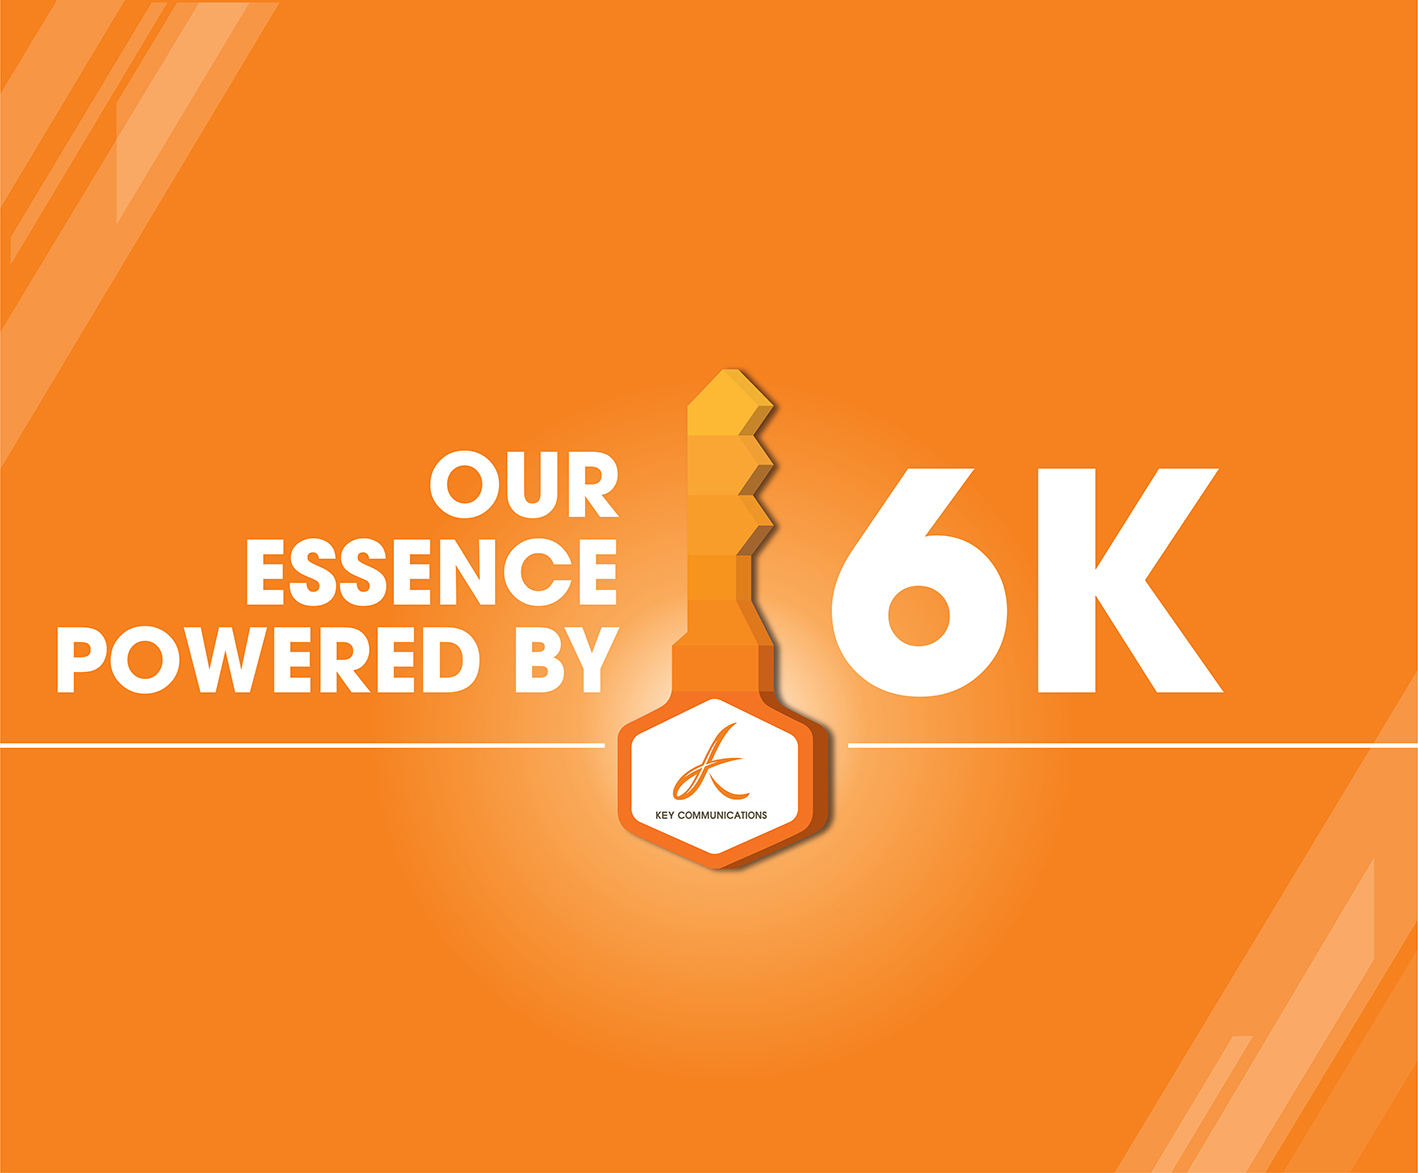 Our Essence Powered By 6K